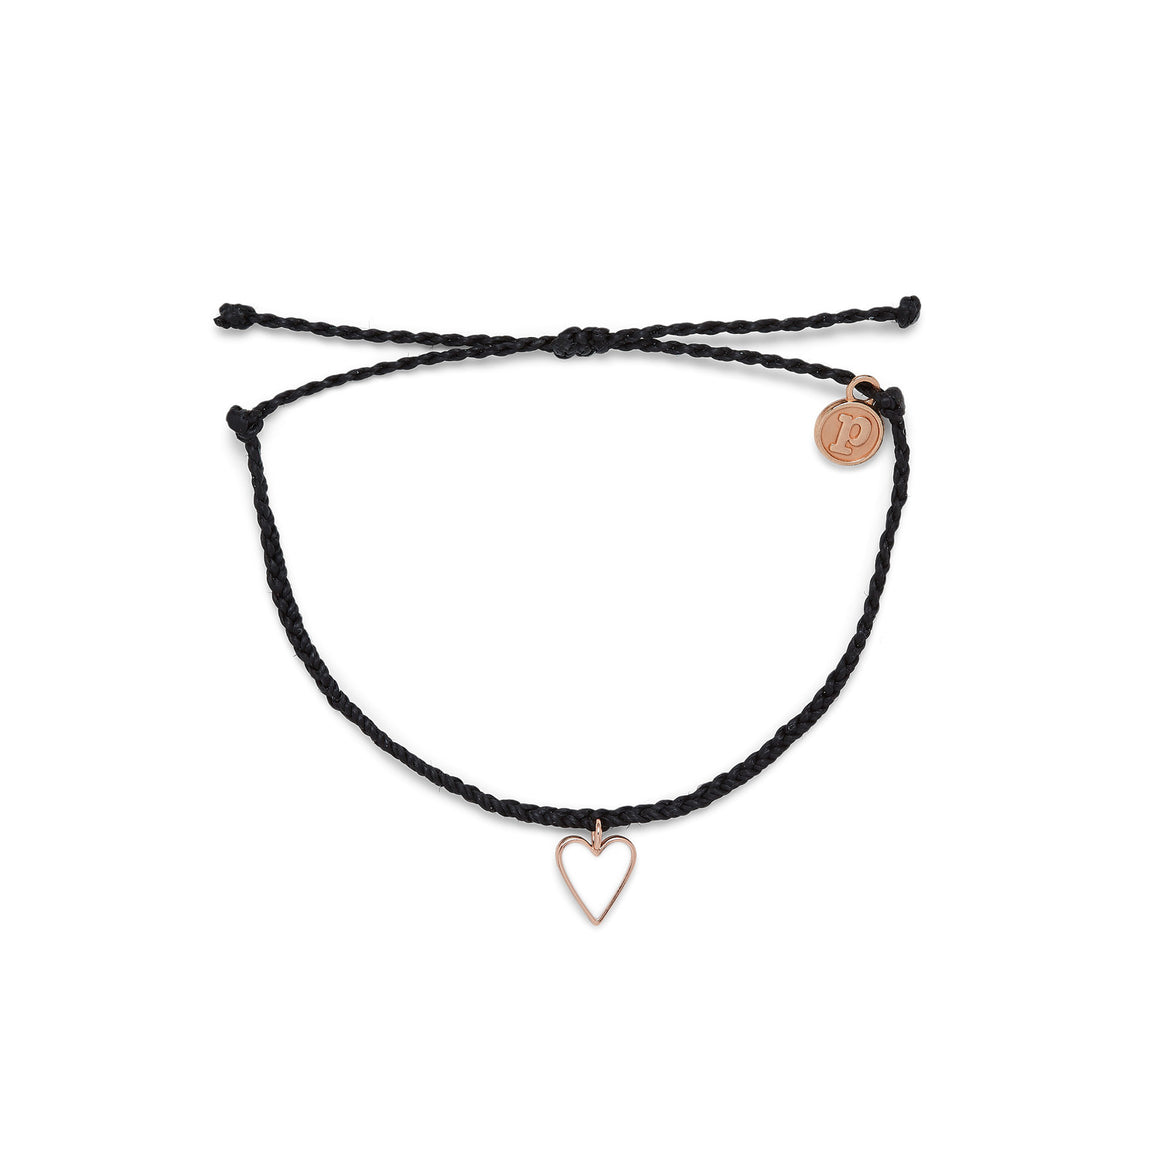 Pura Vida Bracelet - Black Petite Heart Rose Gold